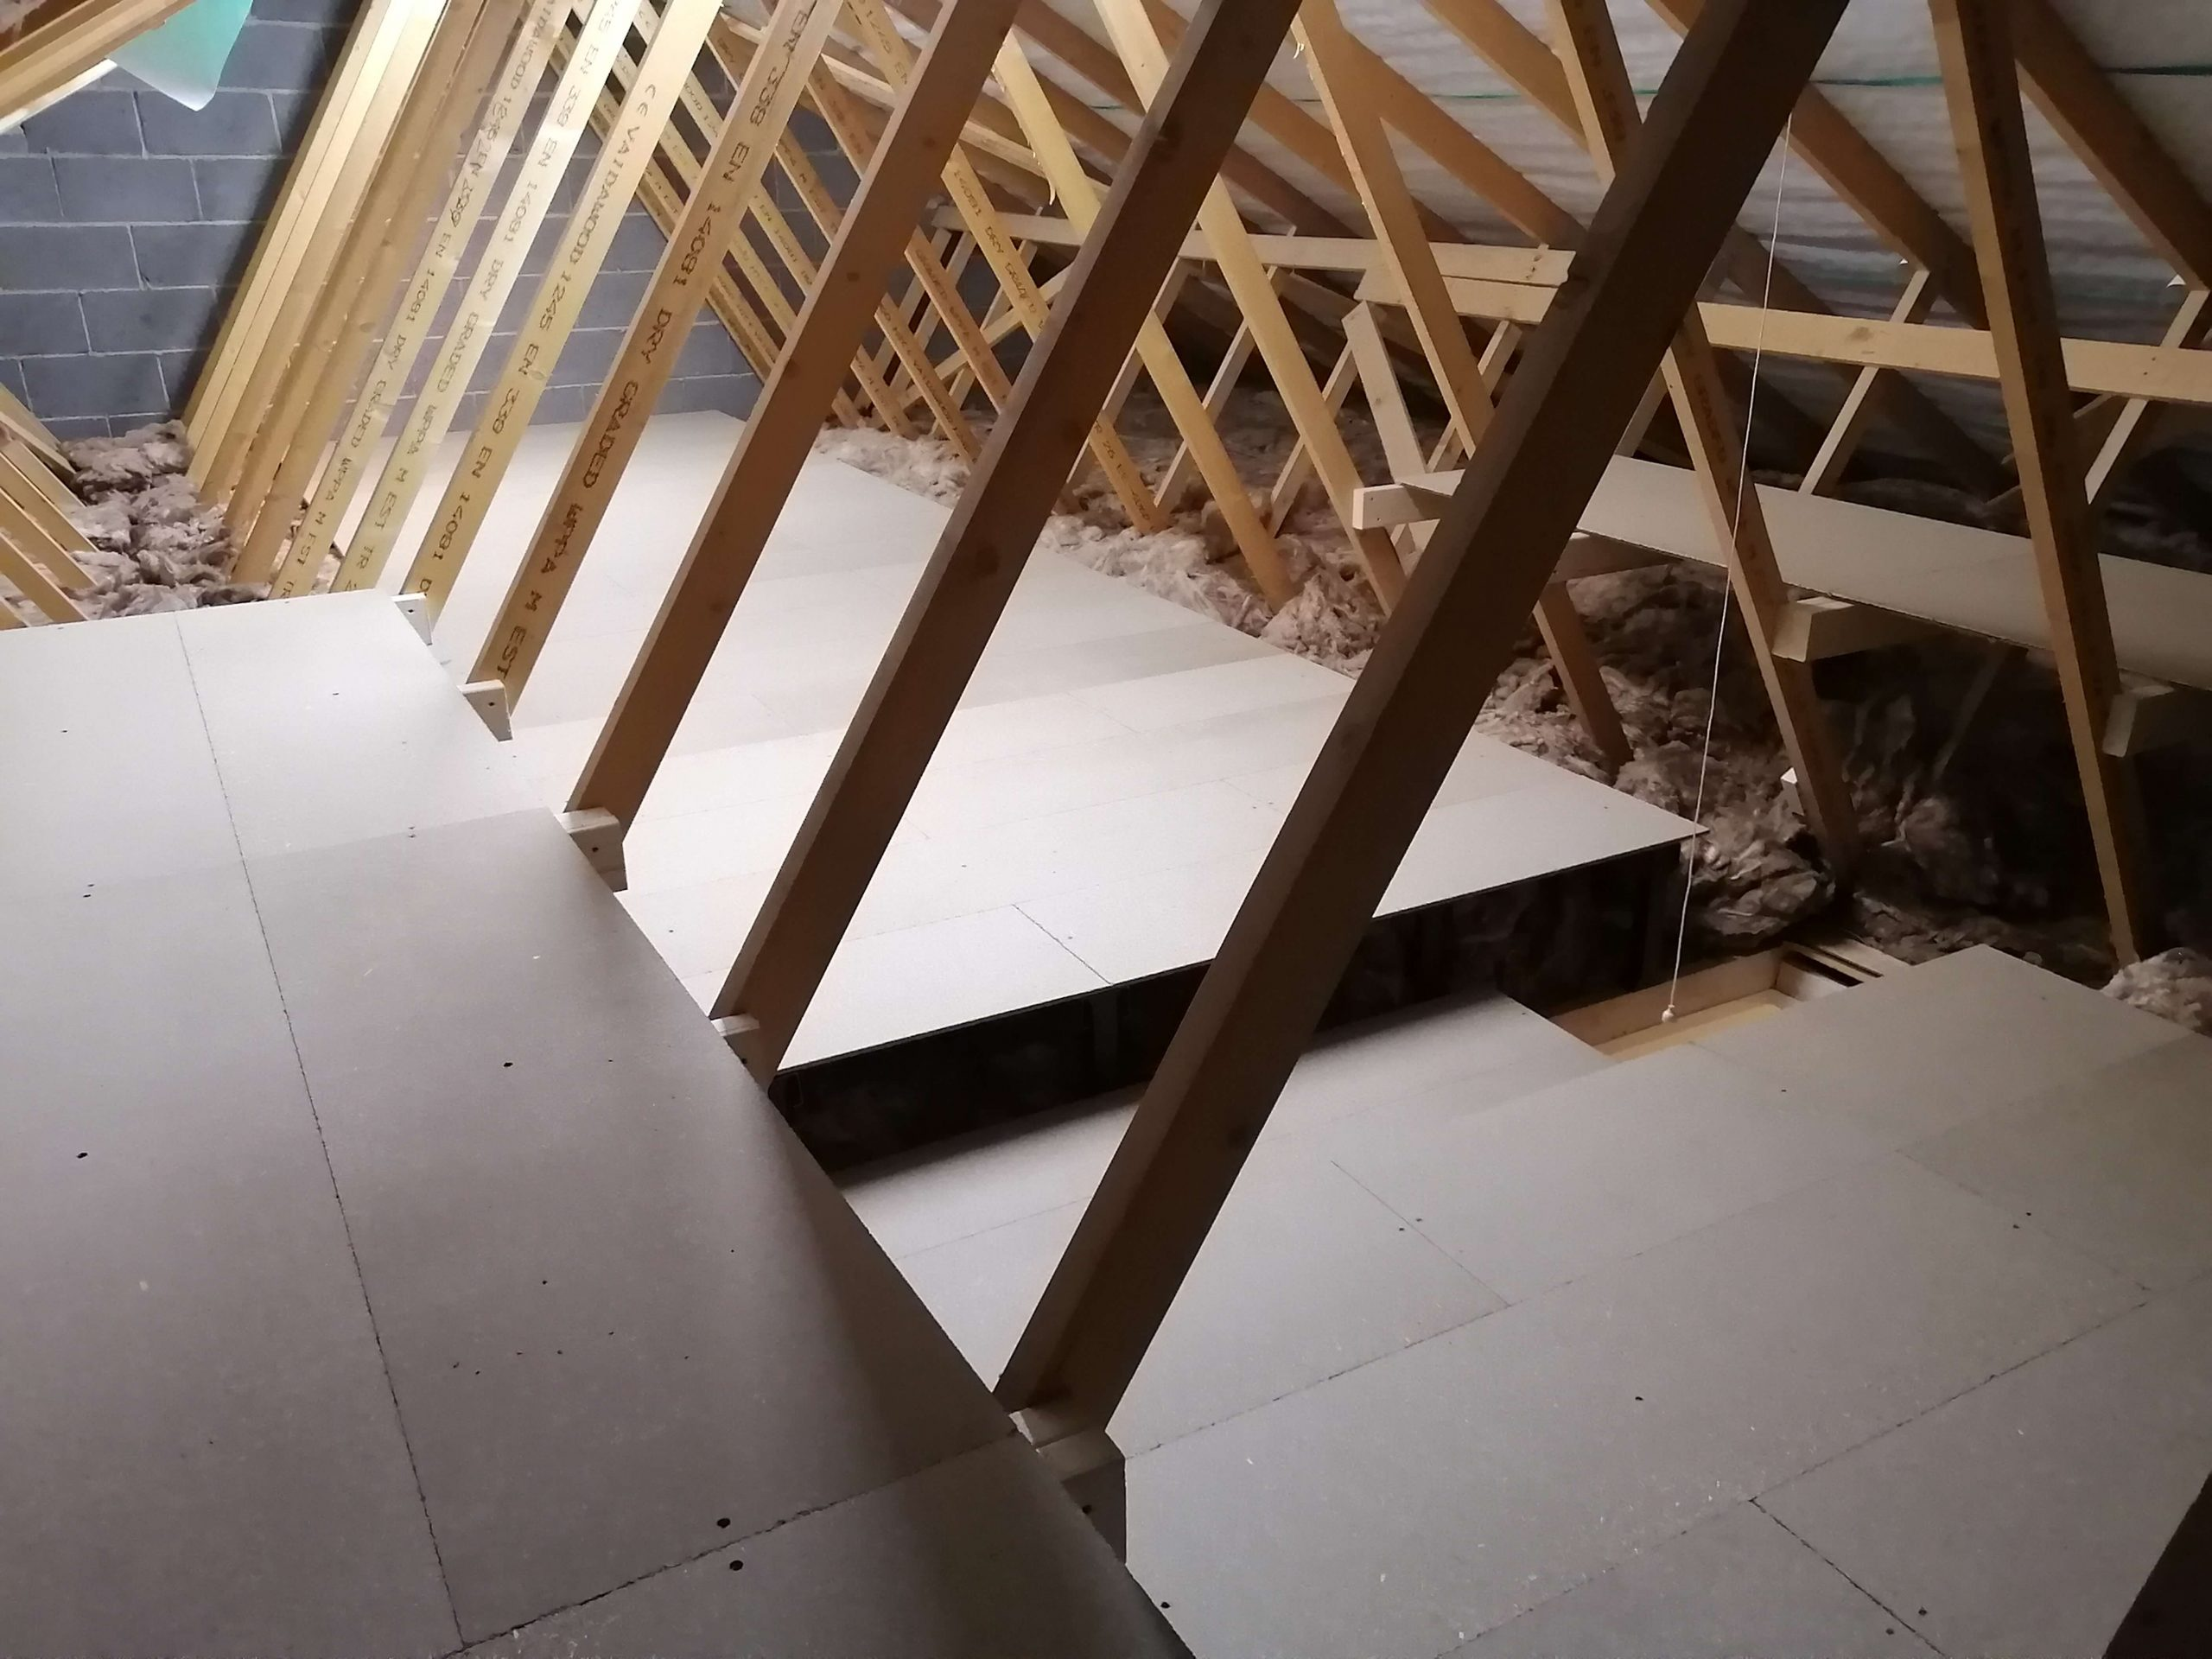 Truss Shelving and Boarding by the Loft Genie